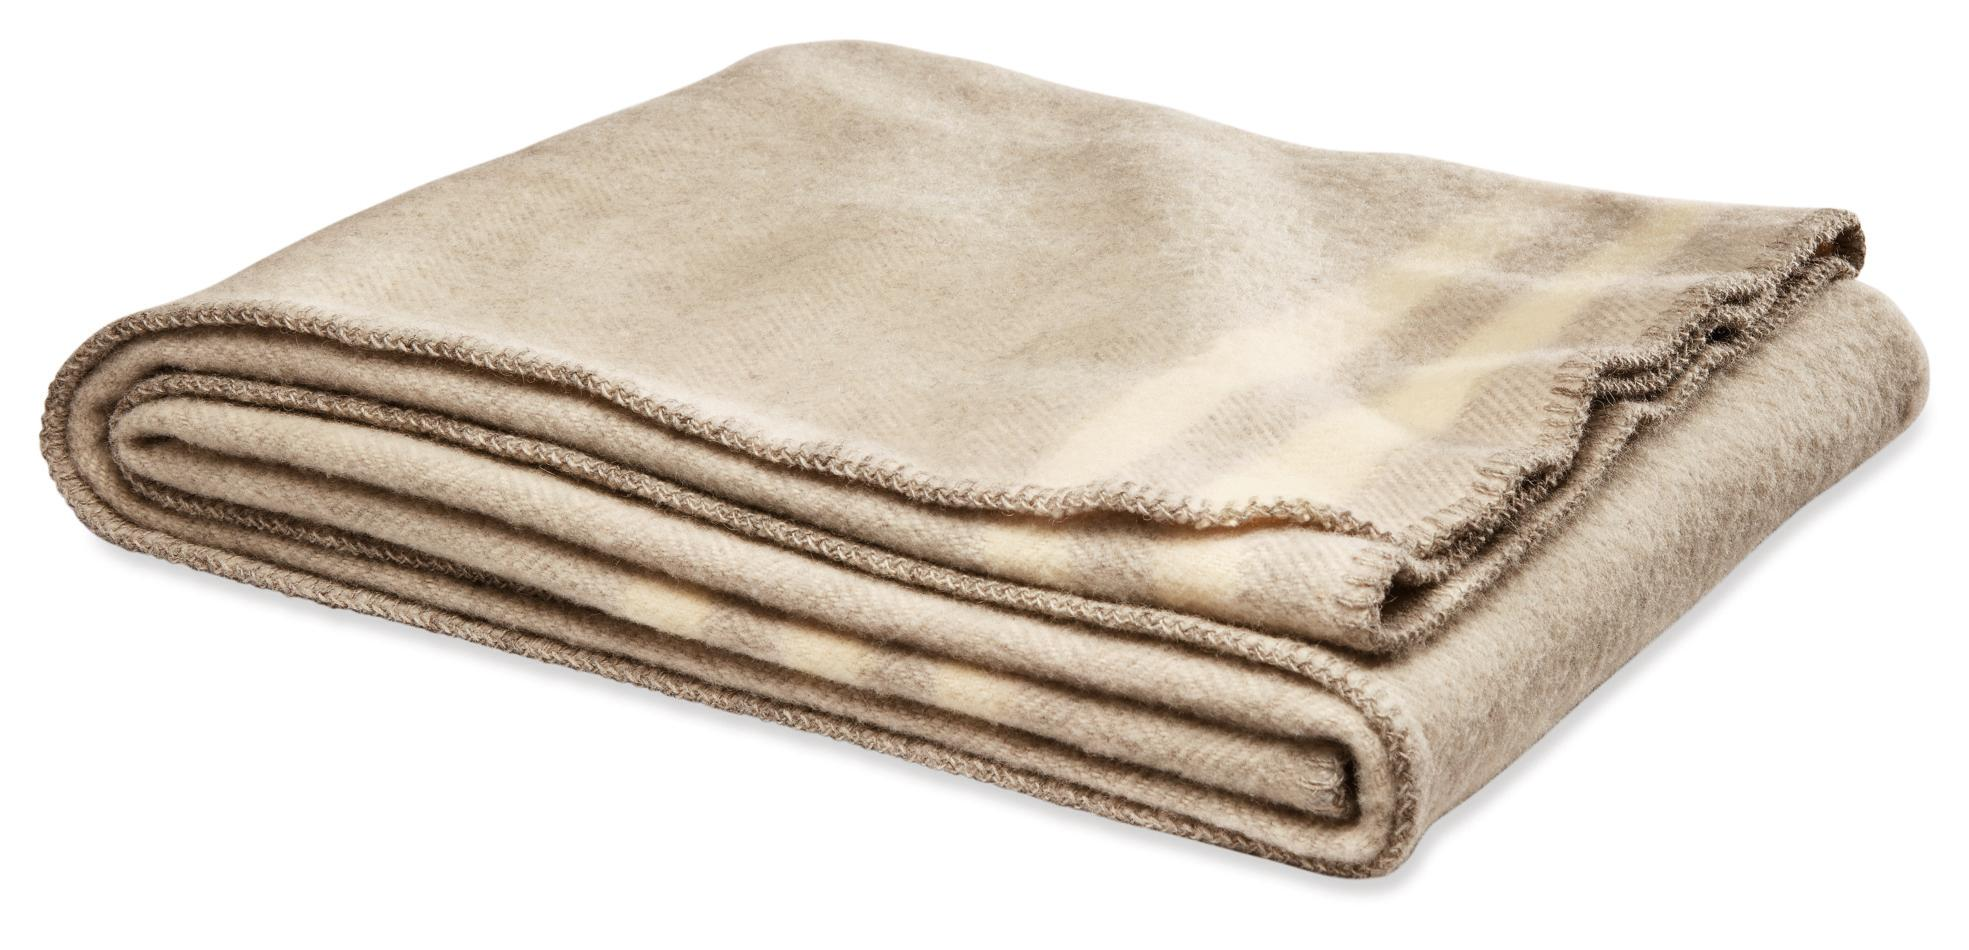 This handsome throw looks super soft! It normally retails for $169.  (Image courtesy of Room & Board)